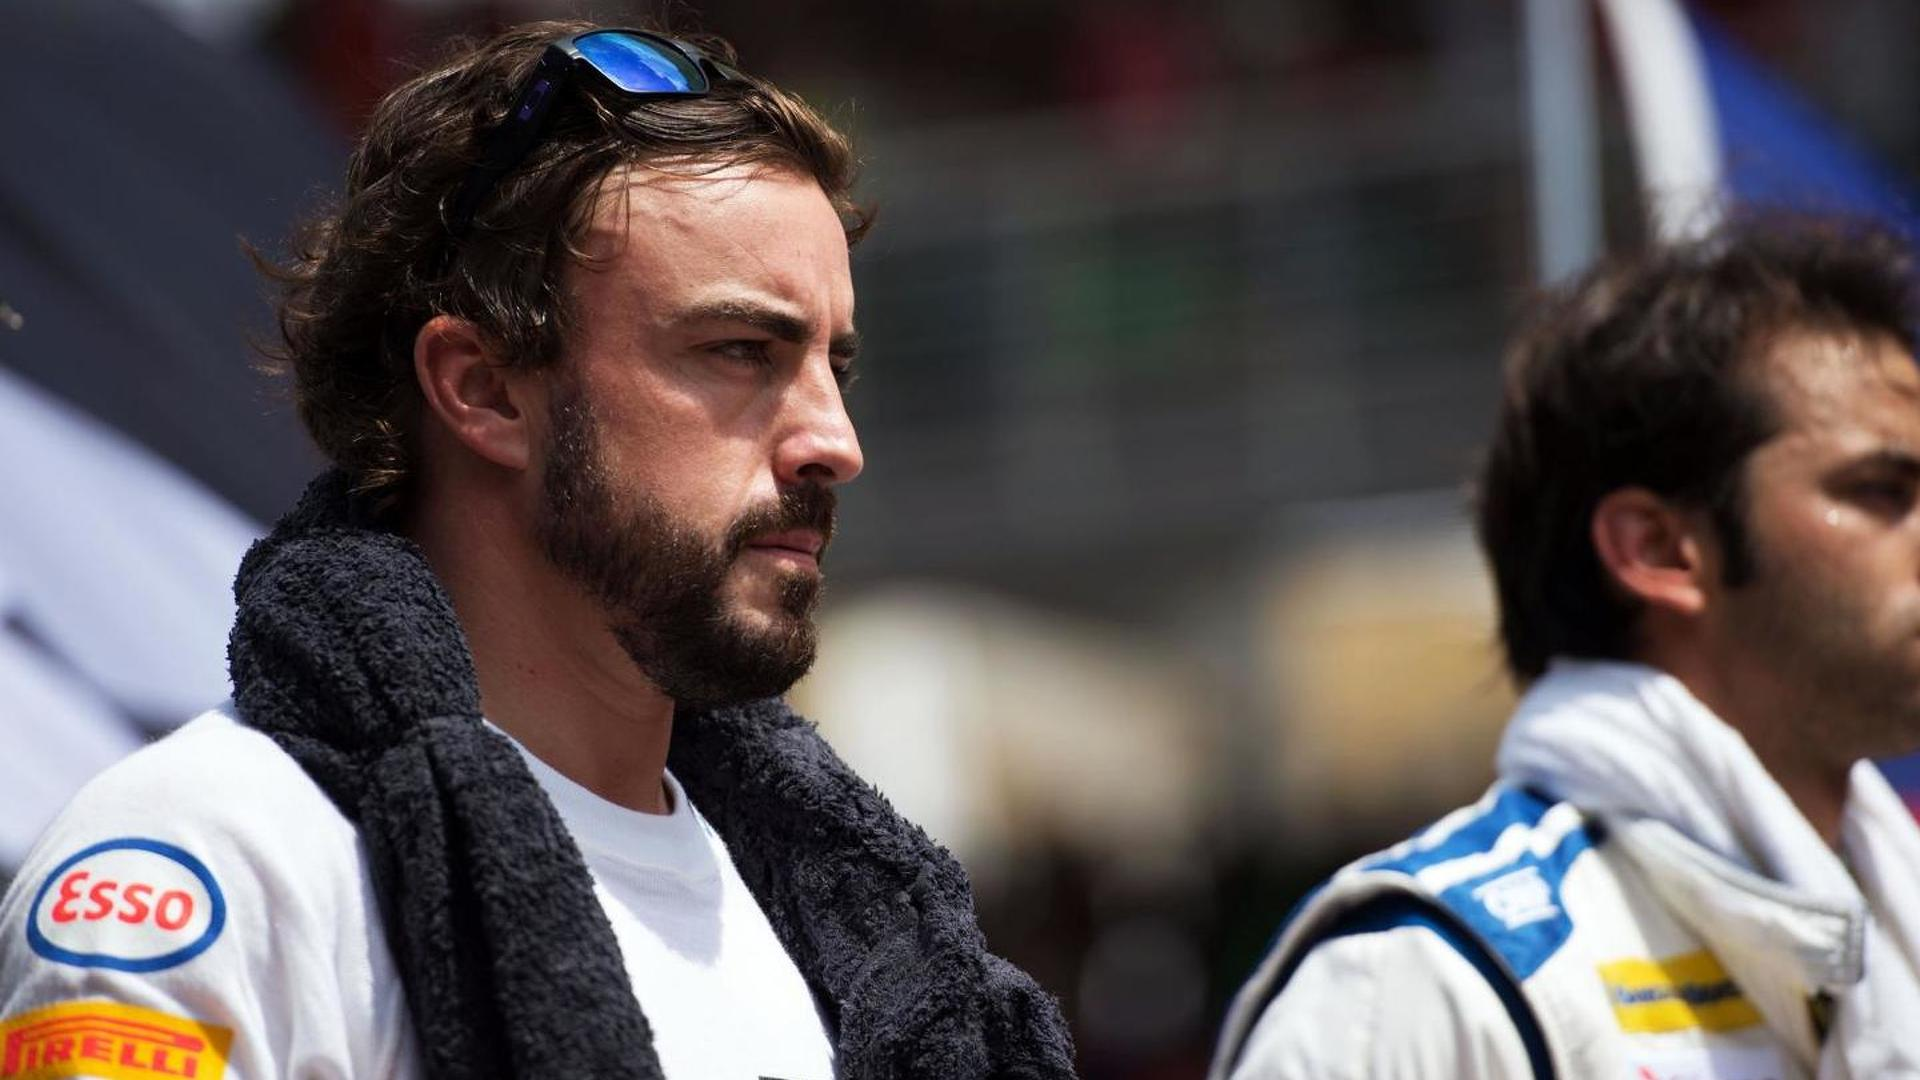 Spaniards defend Alonso after McLaren switch